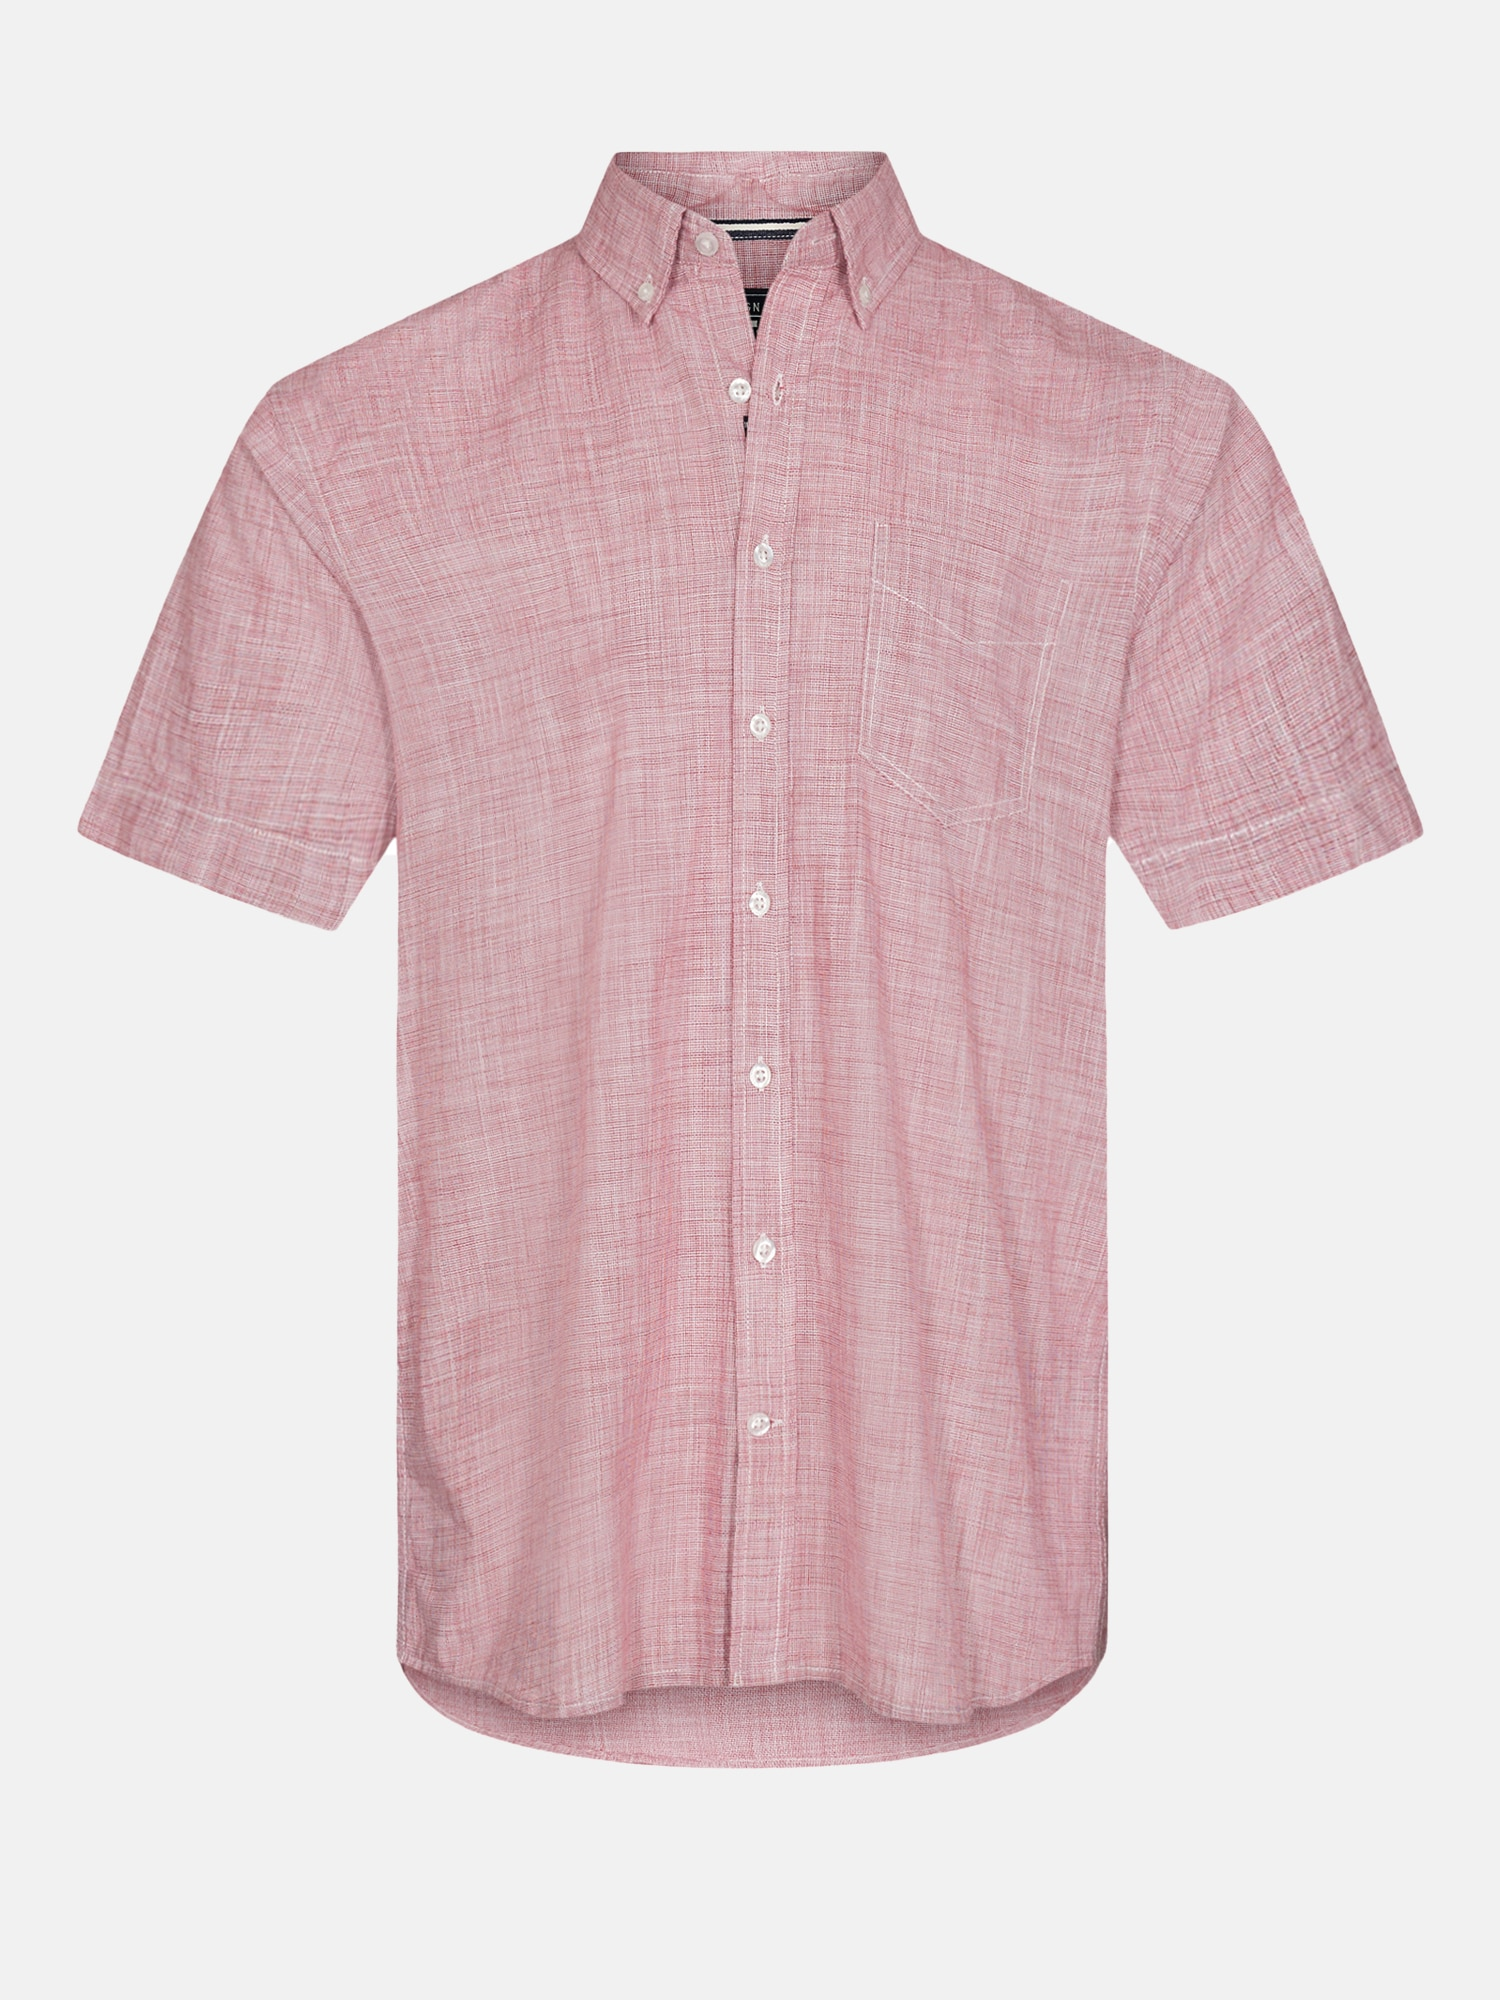 Jim Structure Shirt Ss